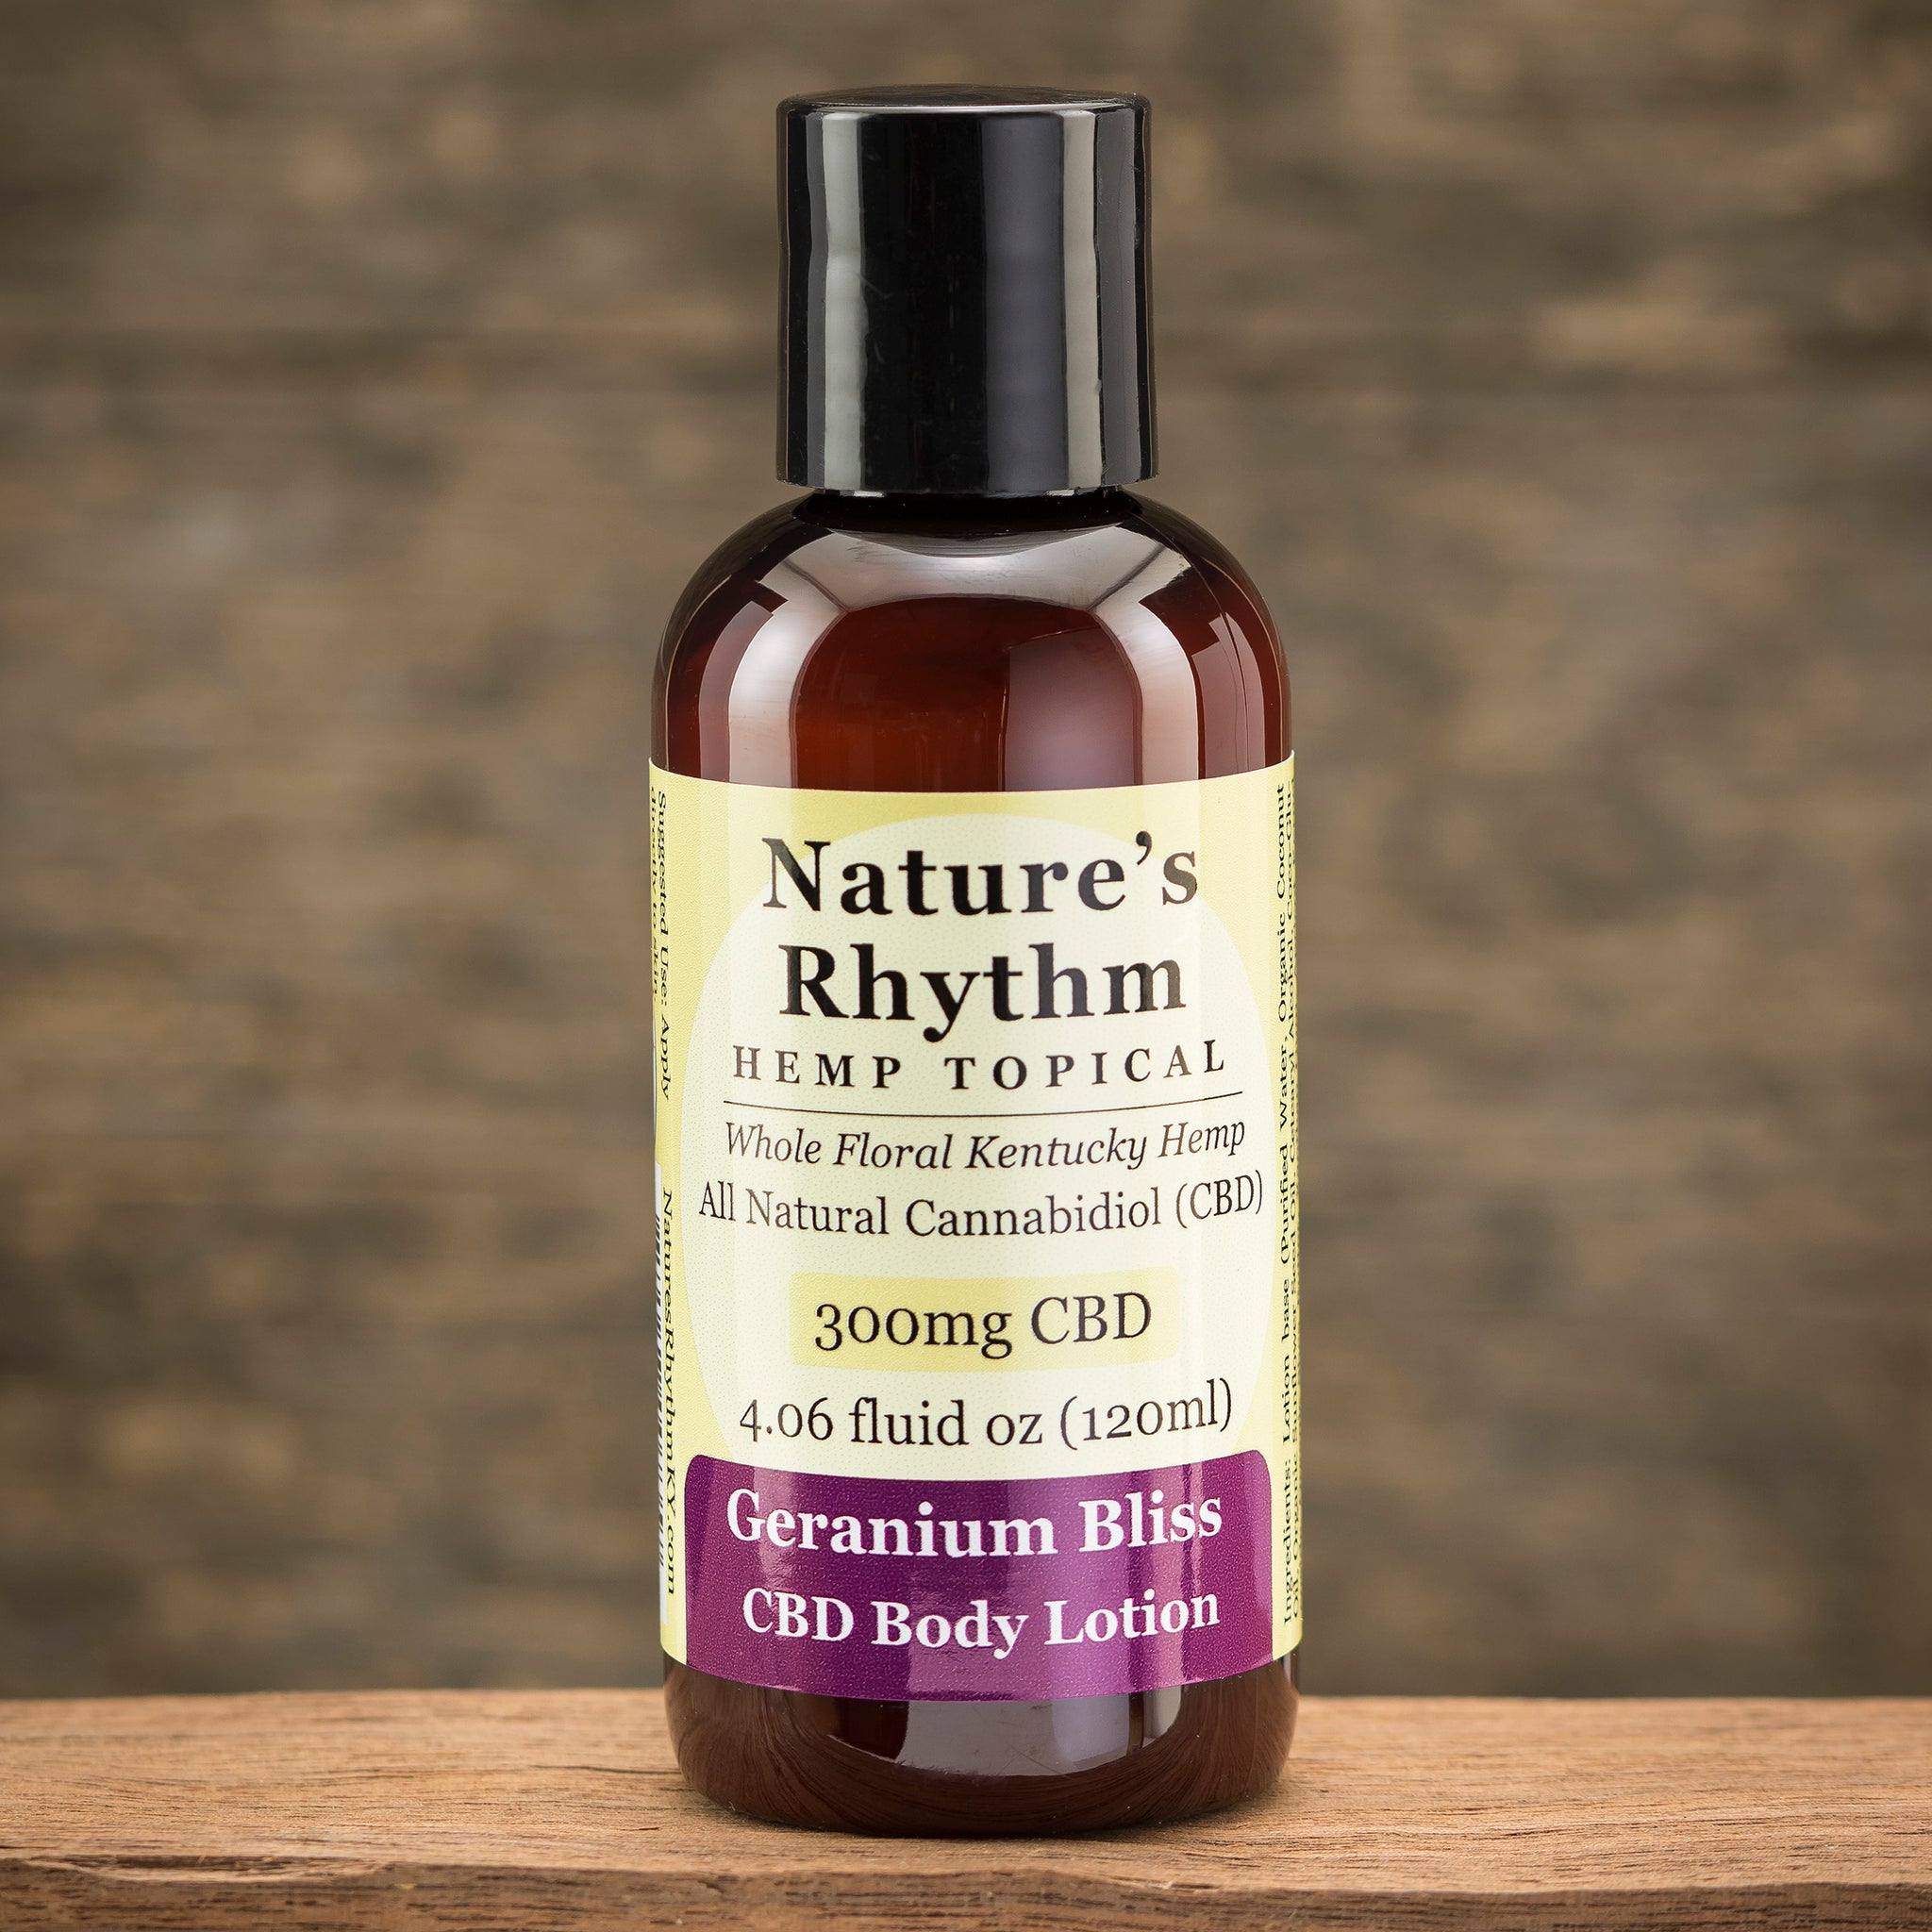 4oz 300mg CBD Body Lotion